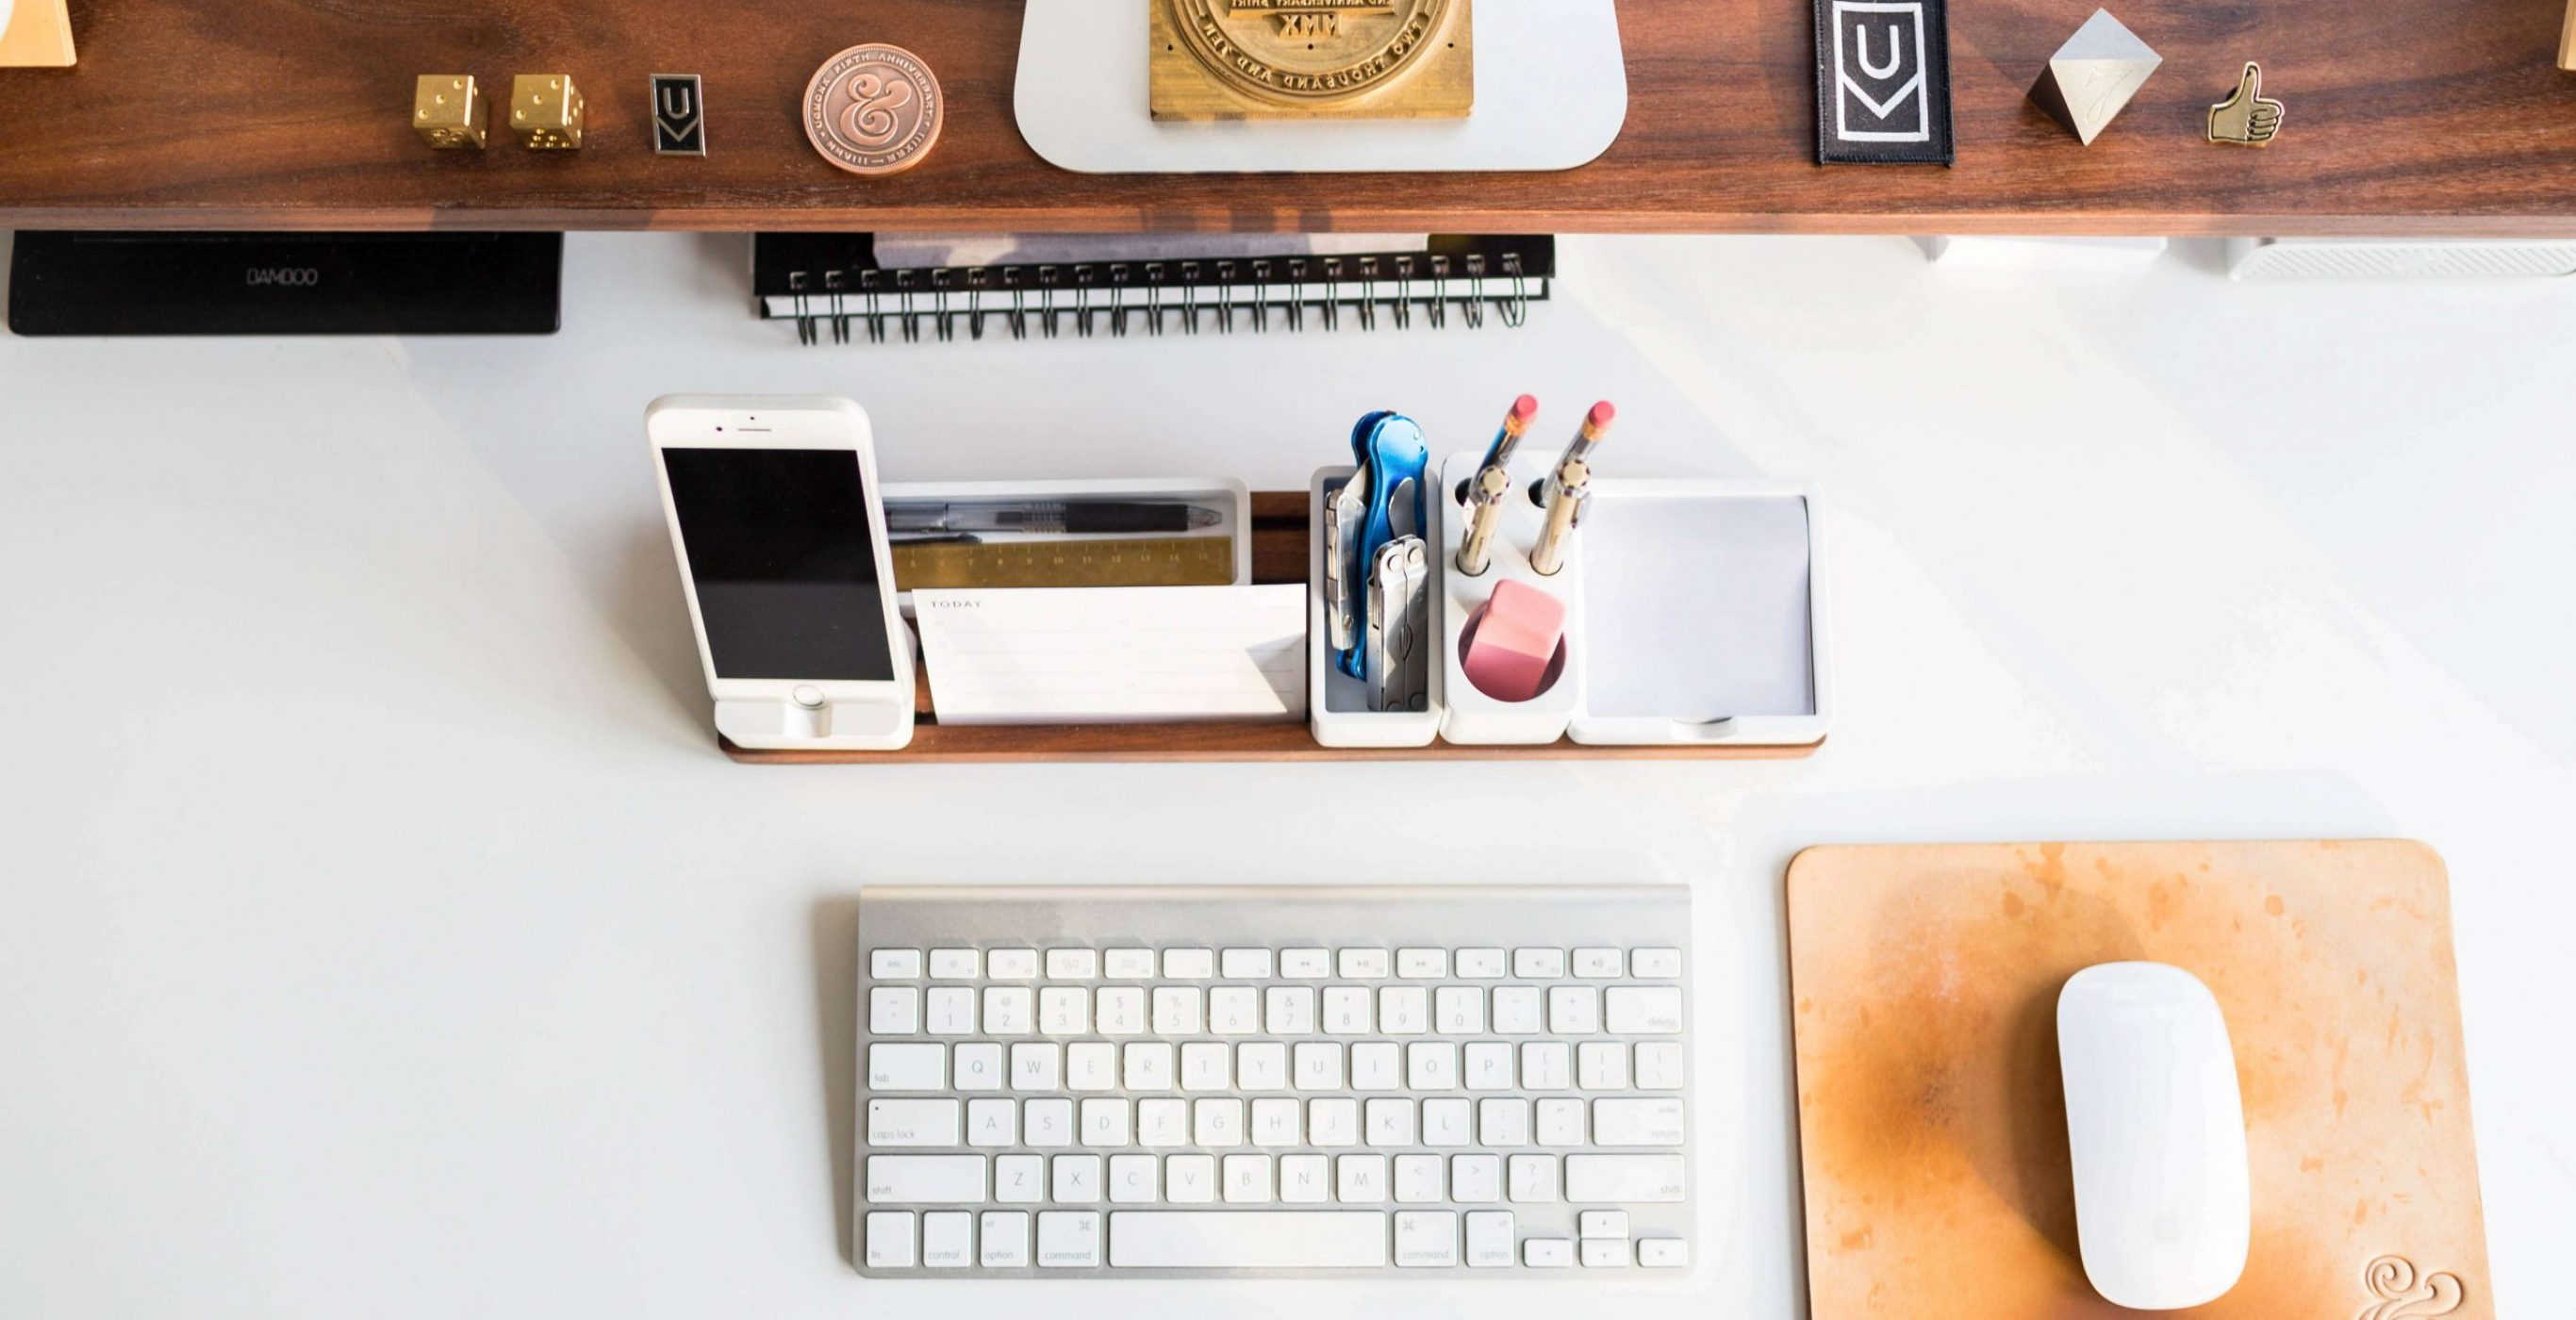 An image of a well-organized desk, used as a featured image for the article